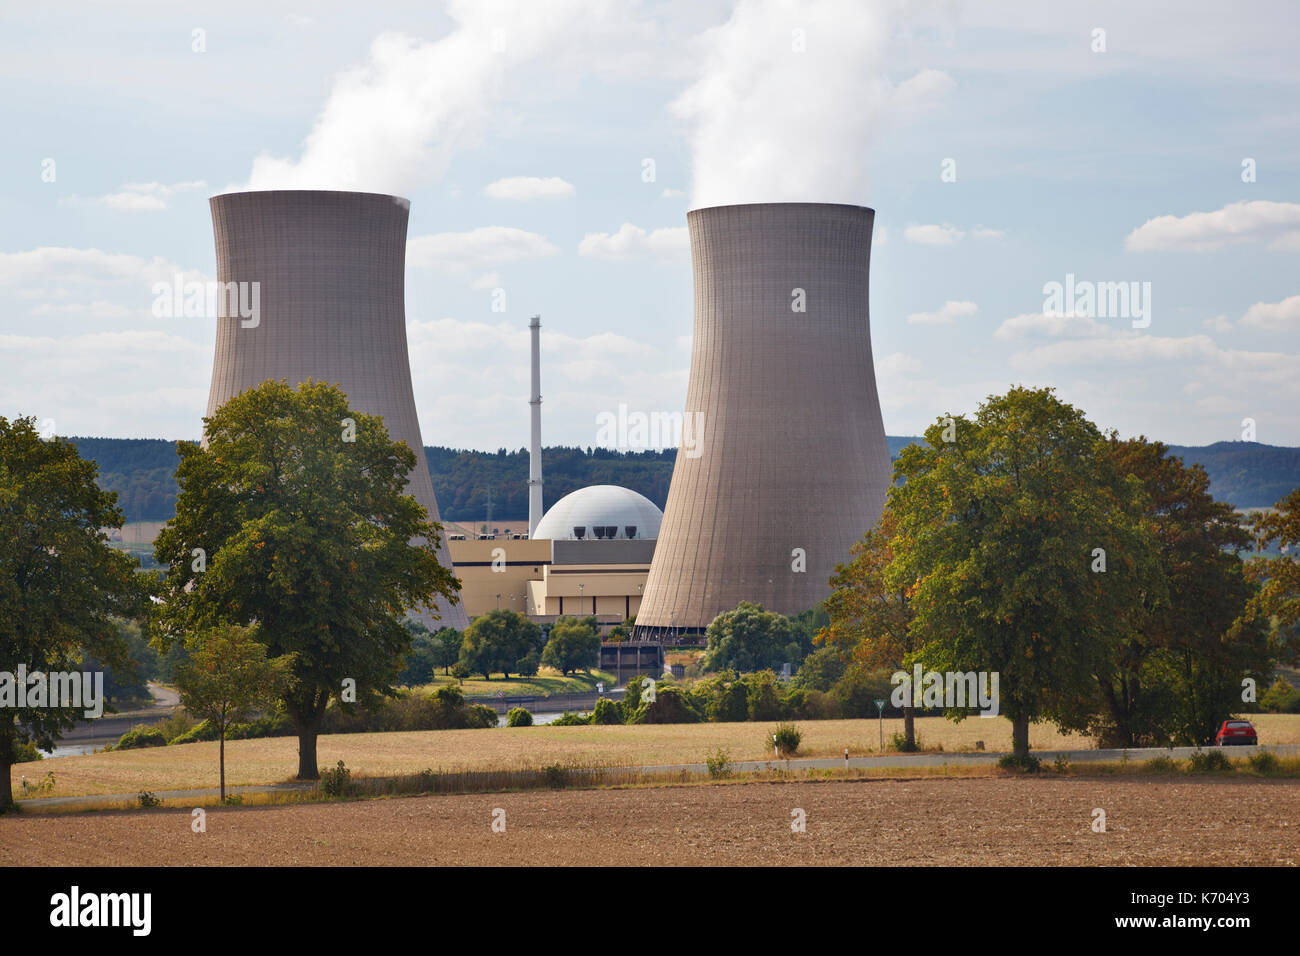 Two tall cooling towers and the reactor building of a nuclear power station in green river landscape seen from a hill. - Stock Image